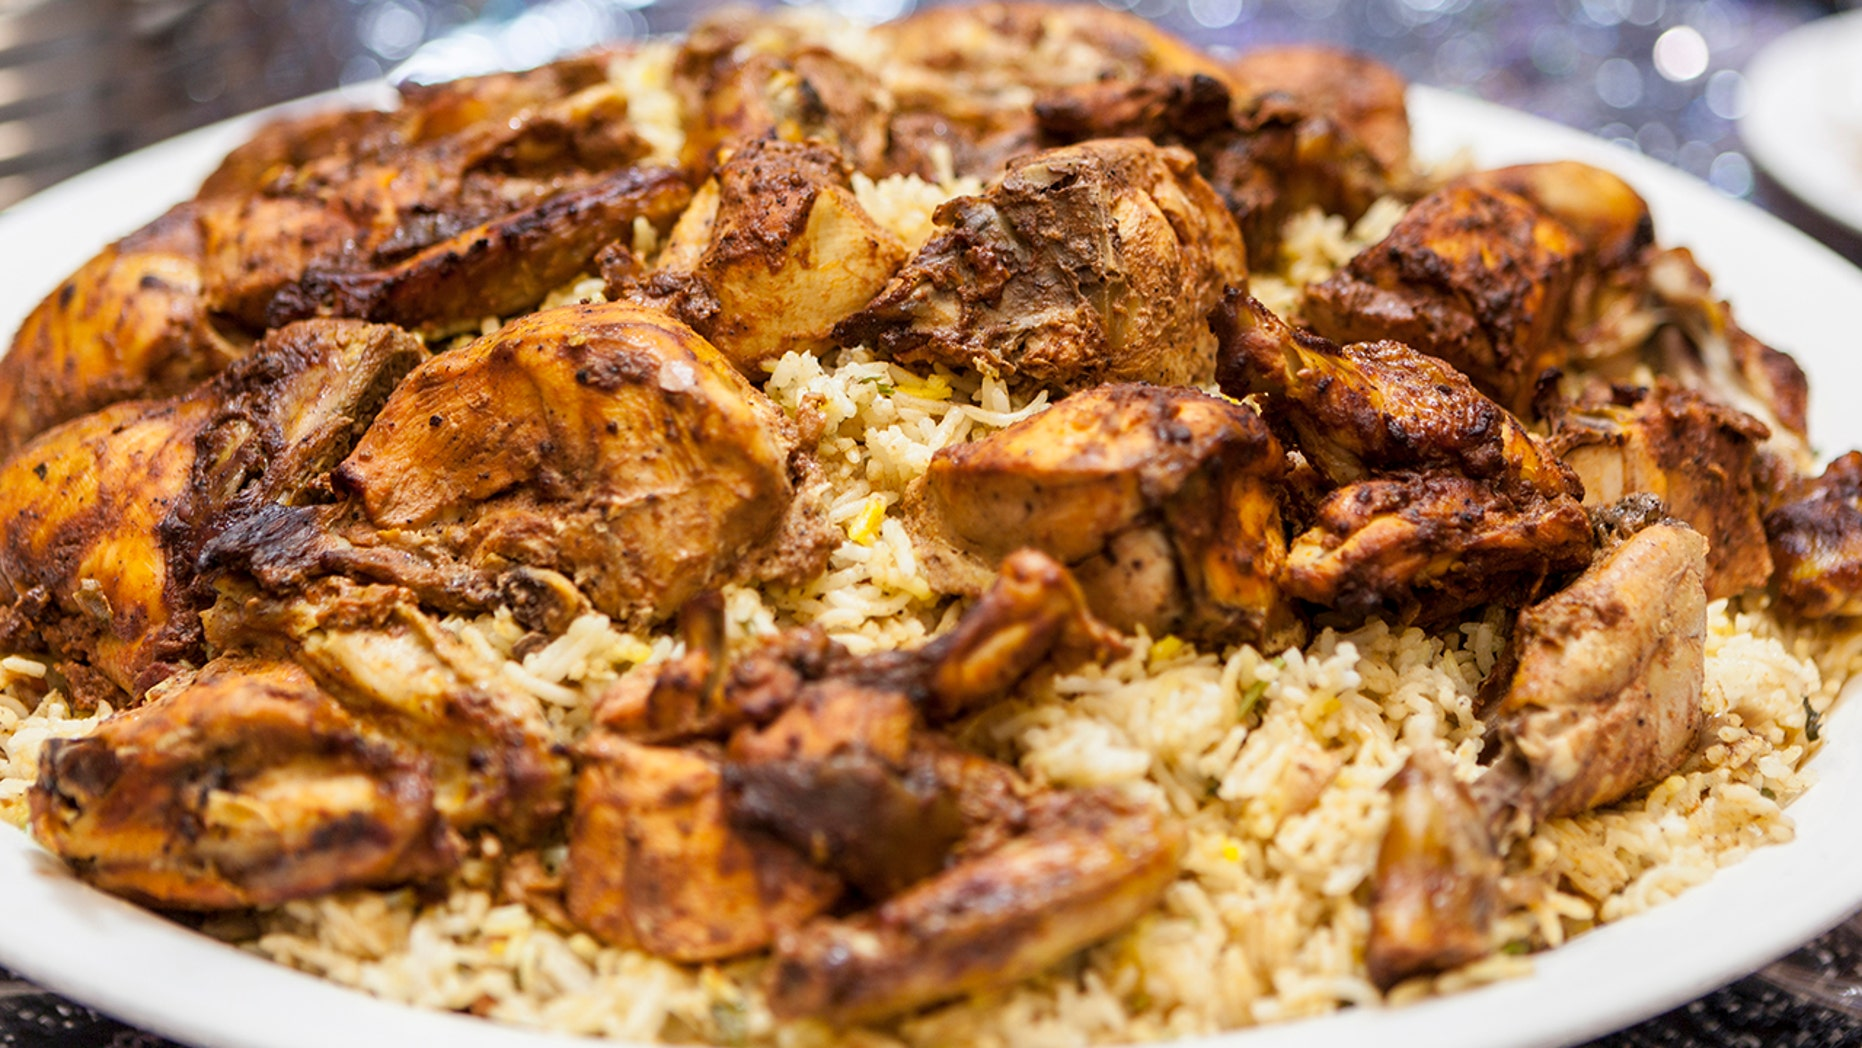 A woman killed her lover then served his remains to Pakistini workers in a traditional meat and rice dish known as machboos, prosecutors said. (File image of traditional rice dish)